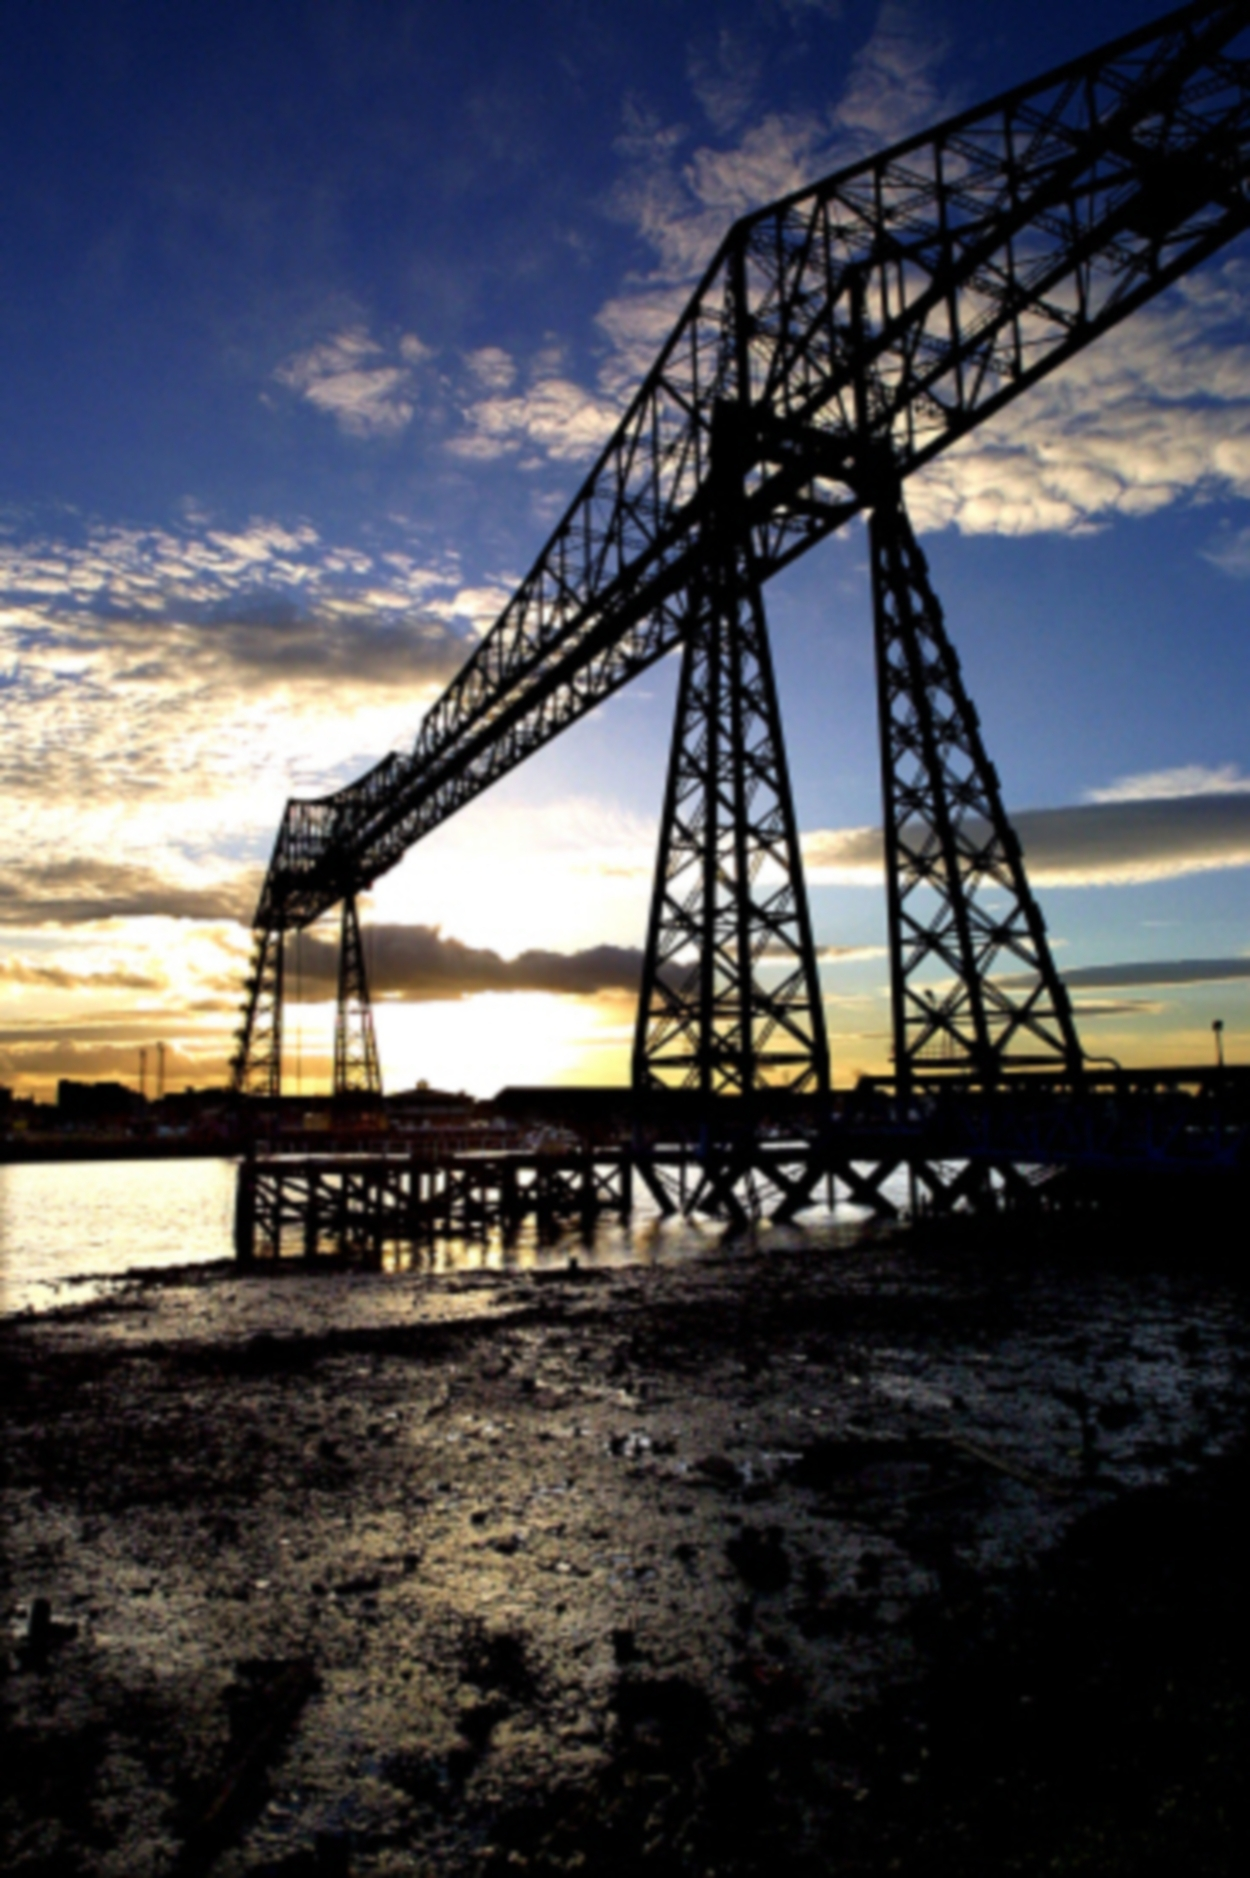 BRIDGE DELAY: It had been hoped that the Transporter Bridge in Middlesbrough would re-open this month following a £2.6 million Heritage Lottery Fund upgrade works and repainting of the structure, supported by Local Transport Plan funding.